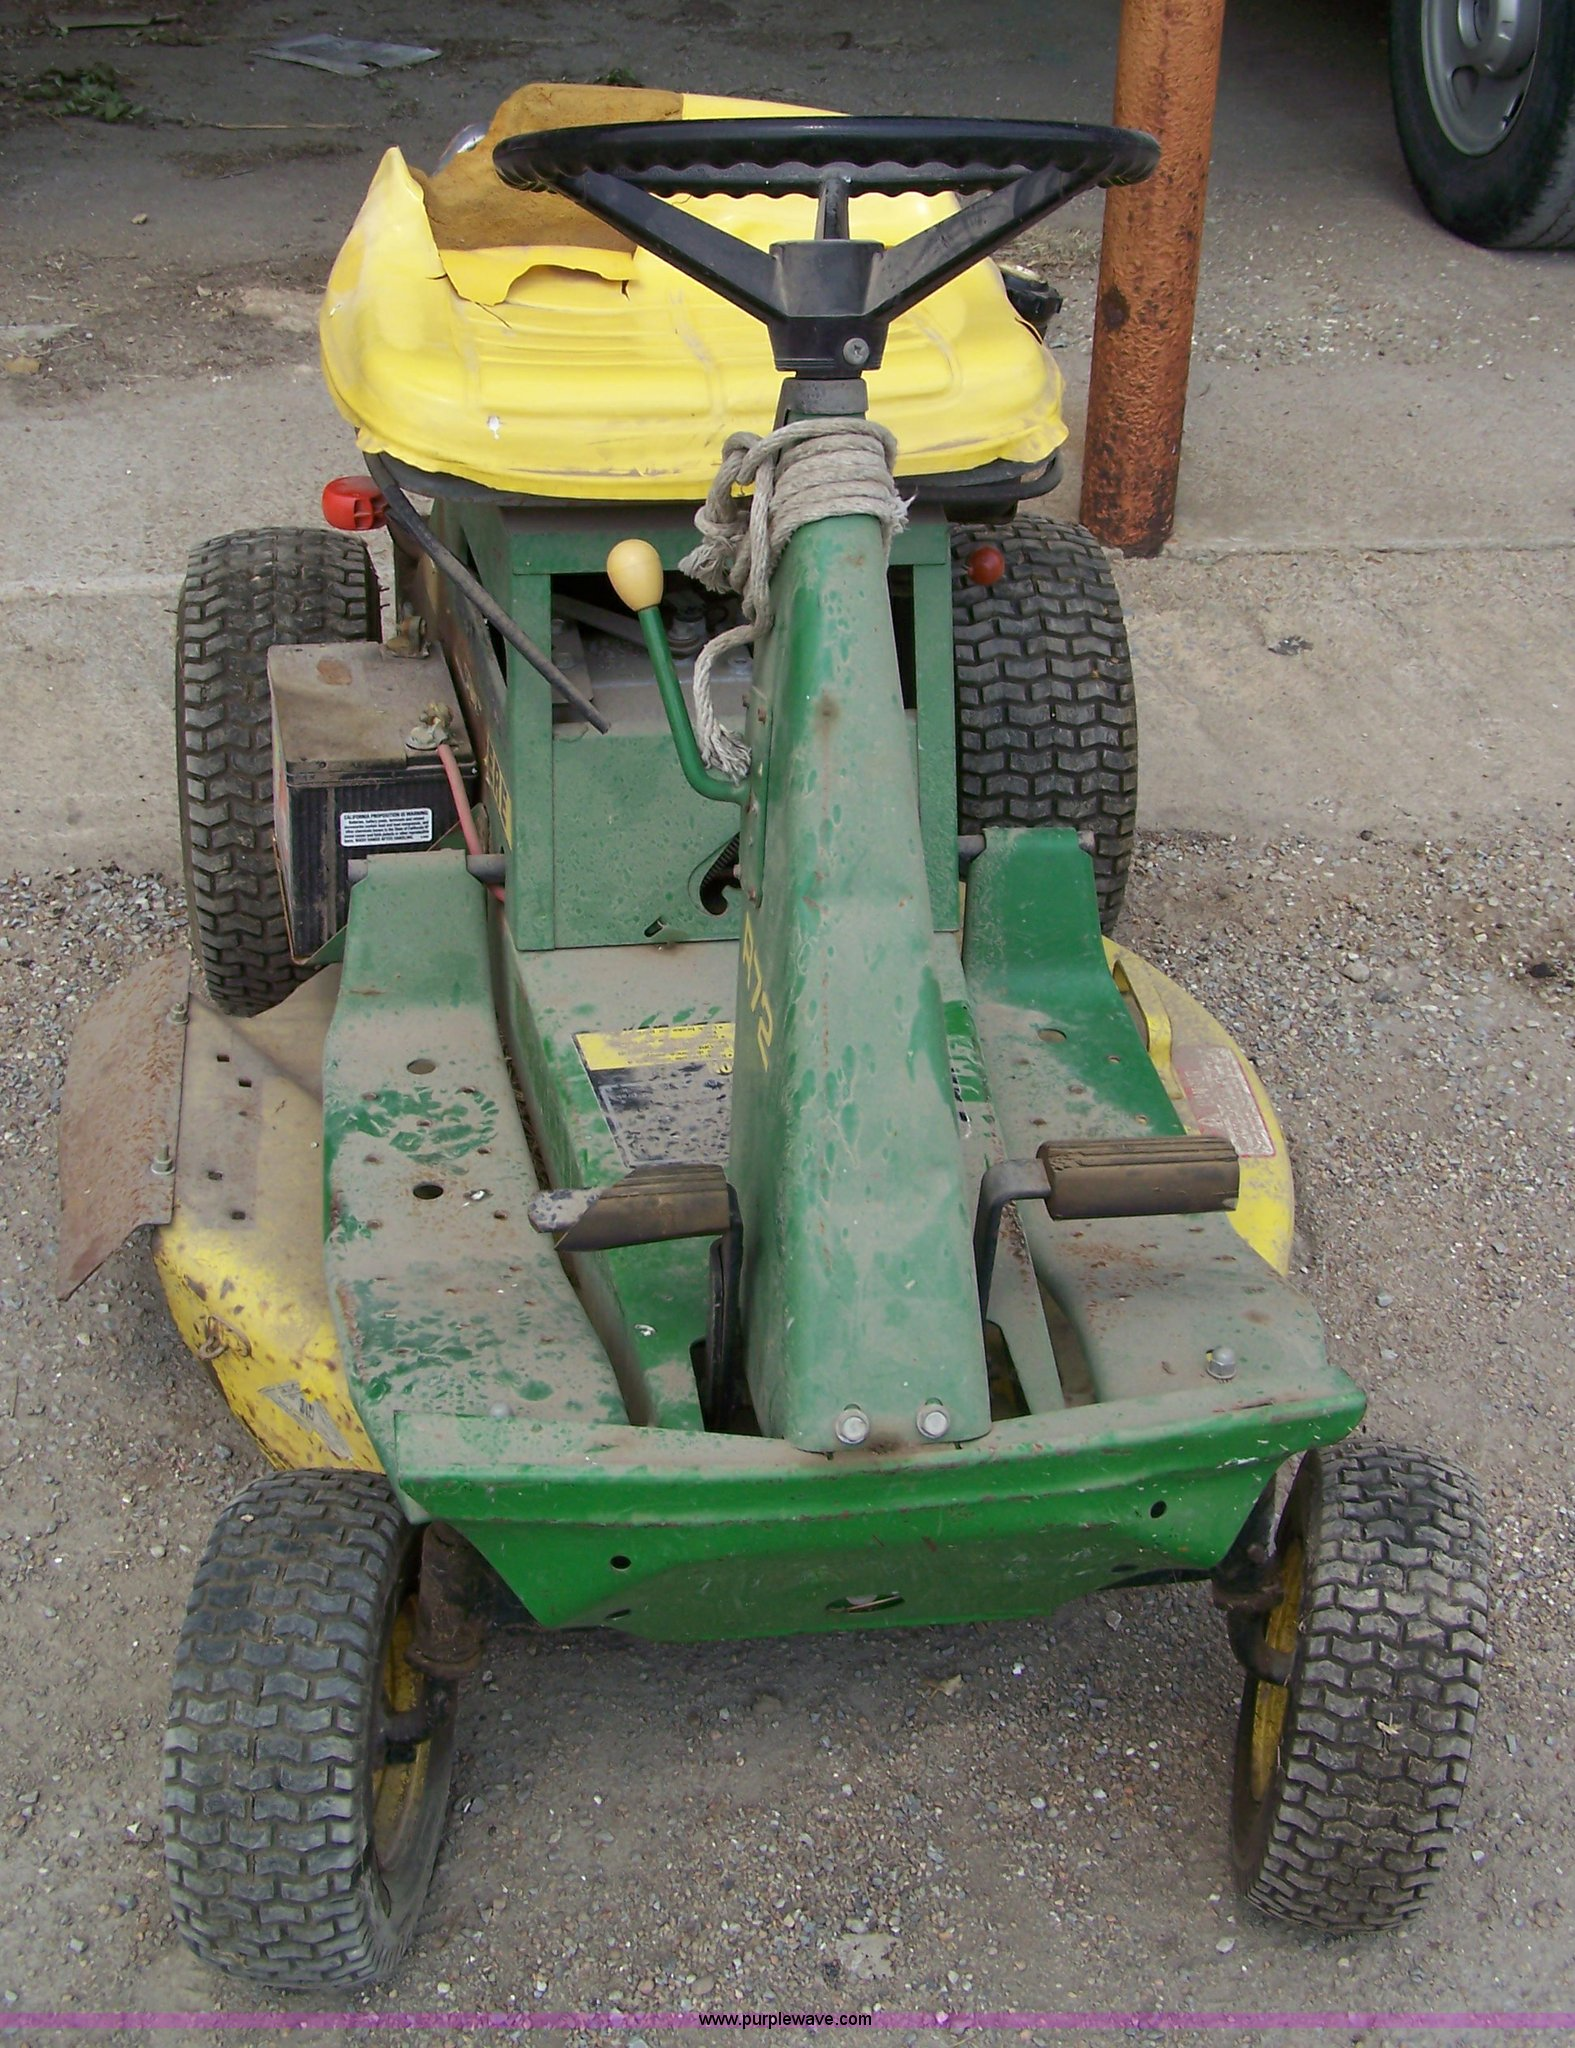 John Deere R72 Lawn Mower Item 7322 Sold July 12 Govern Model Riding Lawnmowermodelr72i Need The Assembly Diagram Full Size In New Window